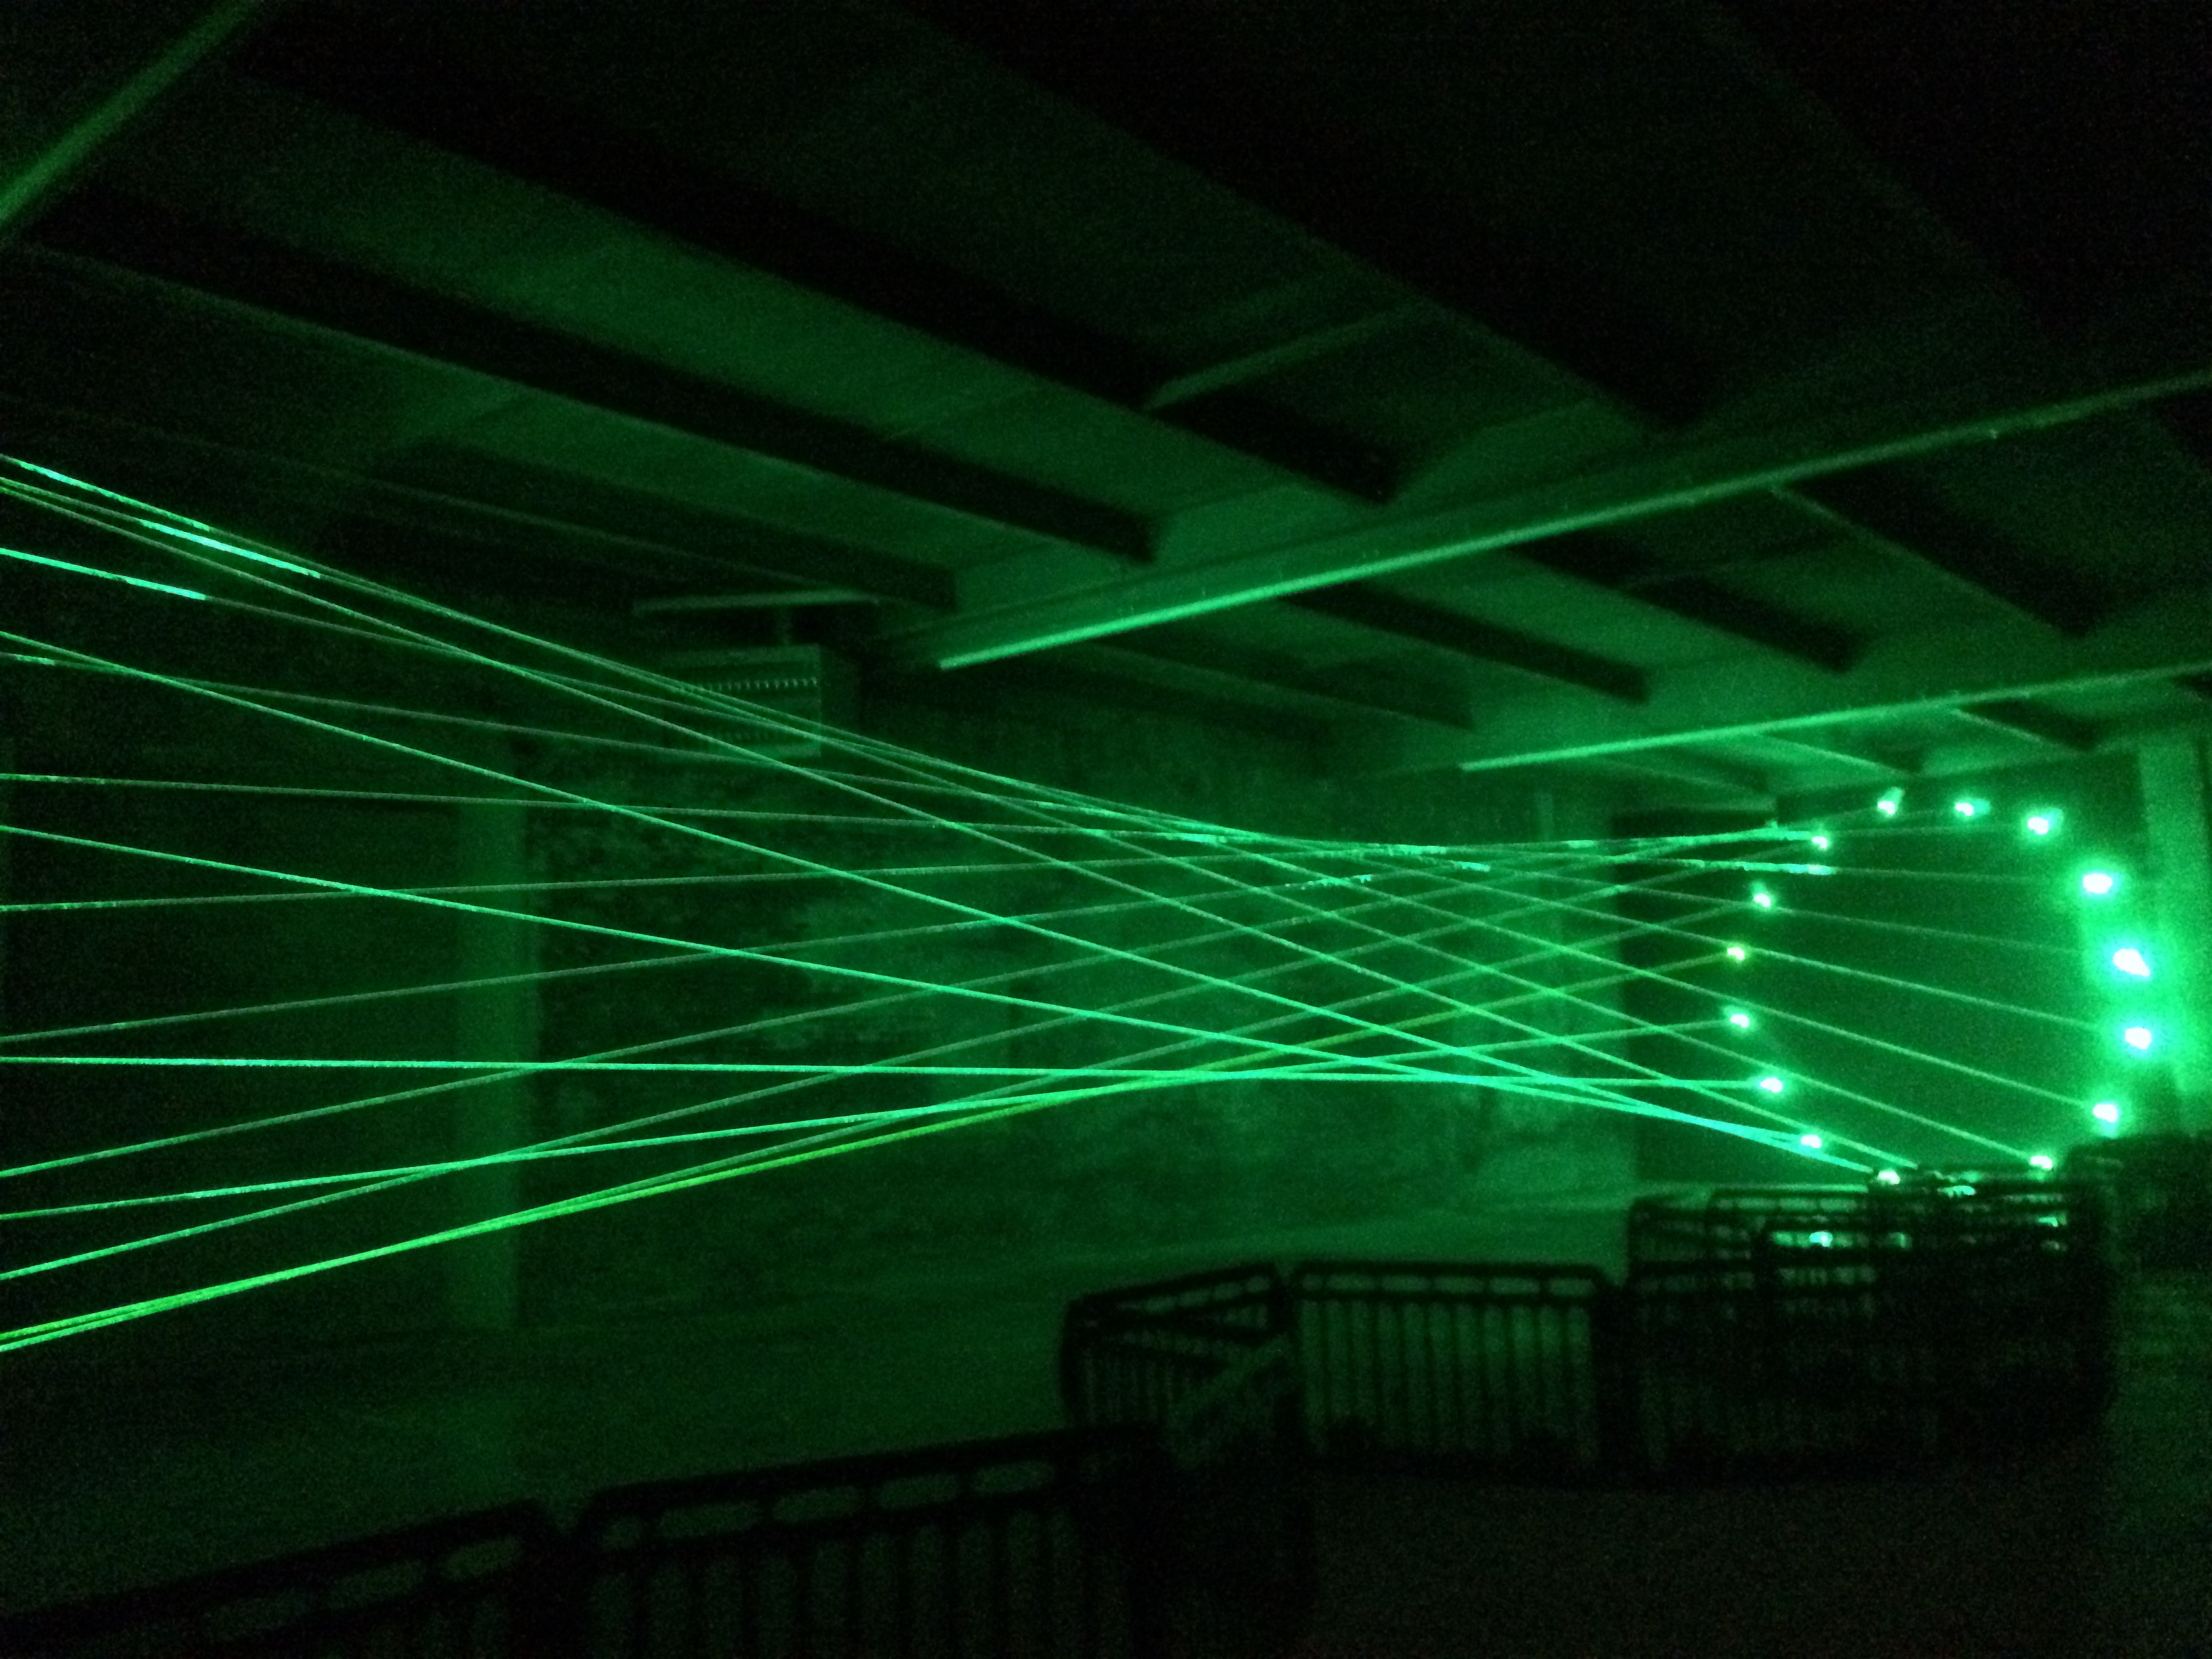 Amazing The Bright Green Laser Beams Create The Lines For This 3 D Drawing. The  Atmospheric Properties Of The Airflow In The Gallery Create A Sense Of  Motion. Awesome Design